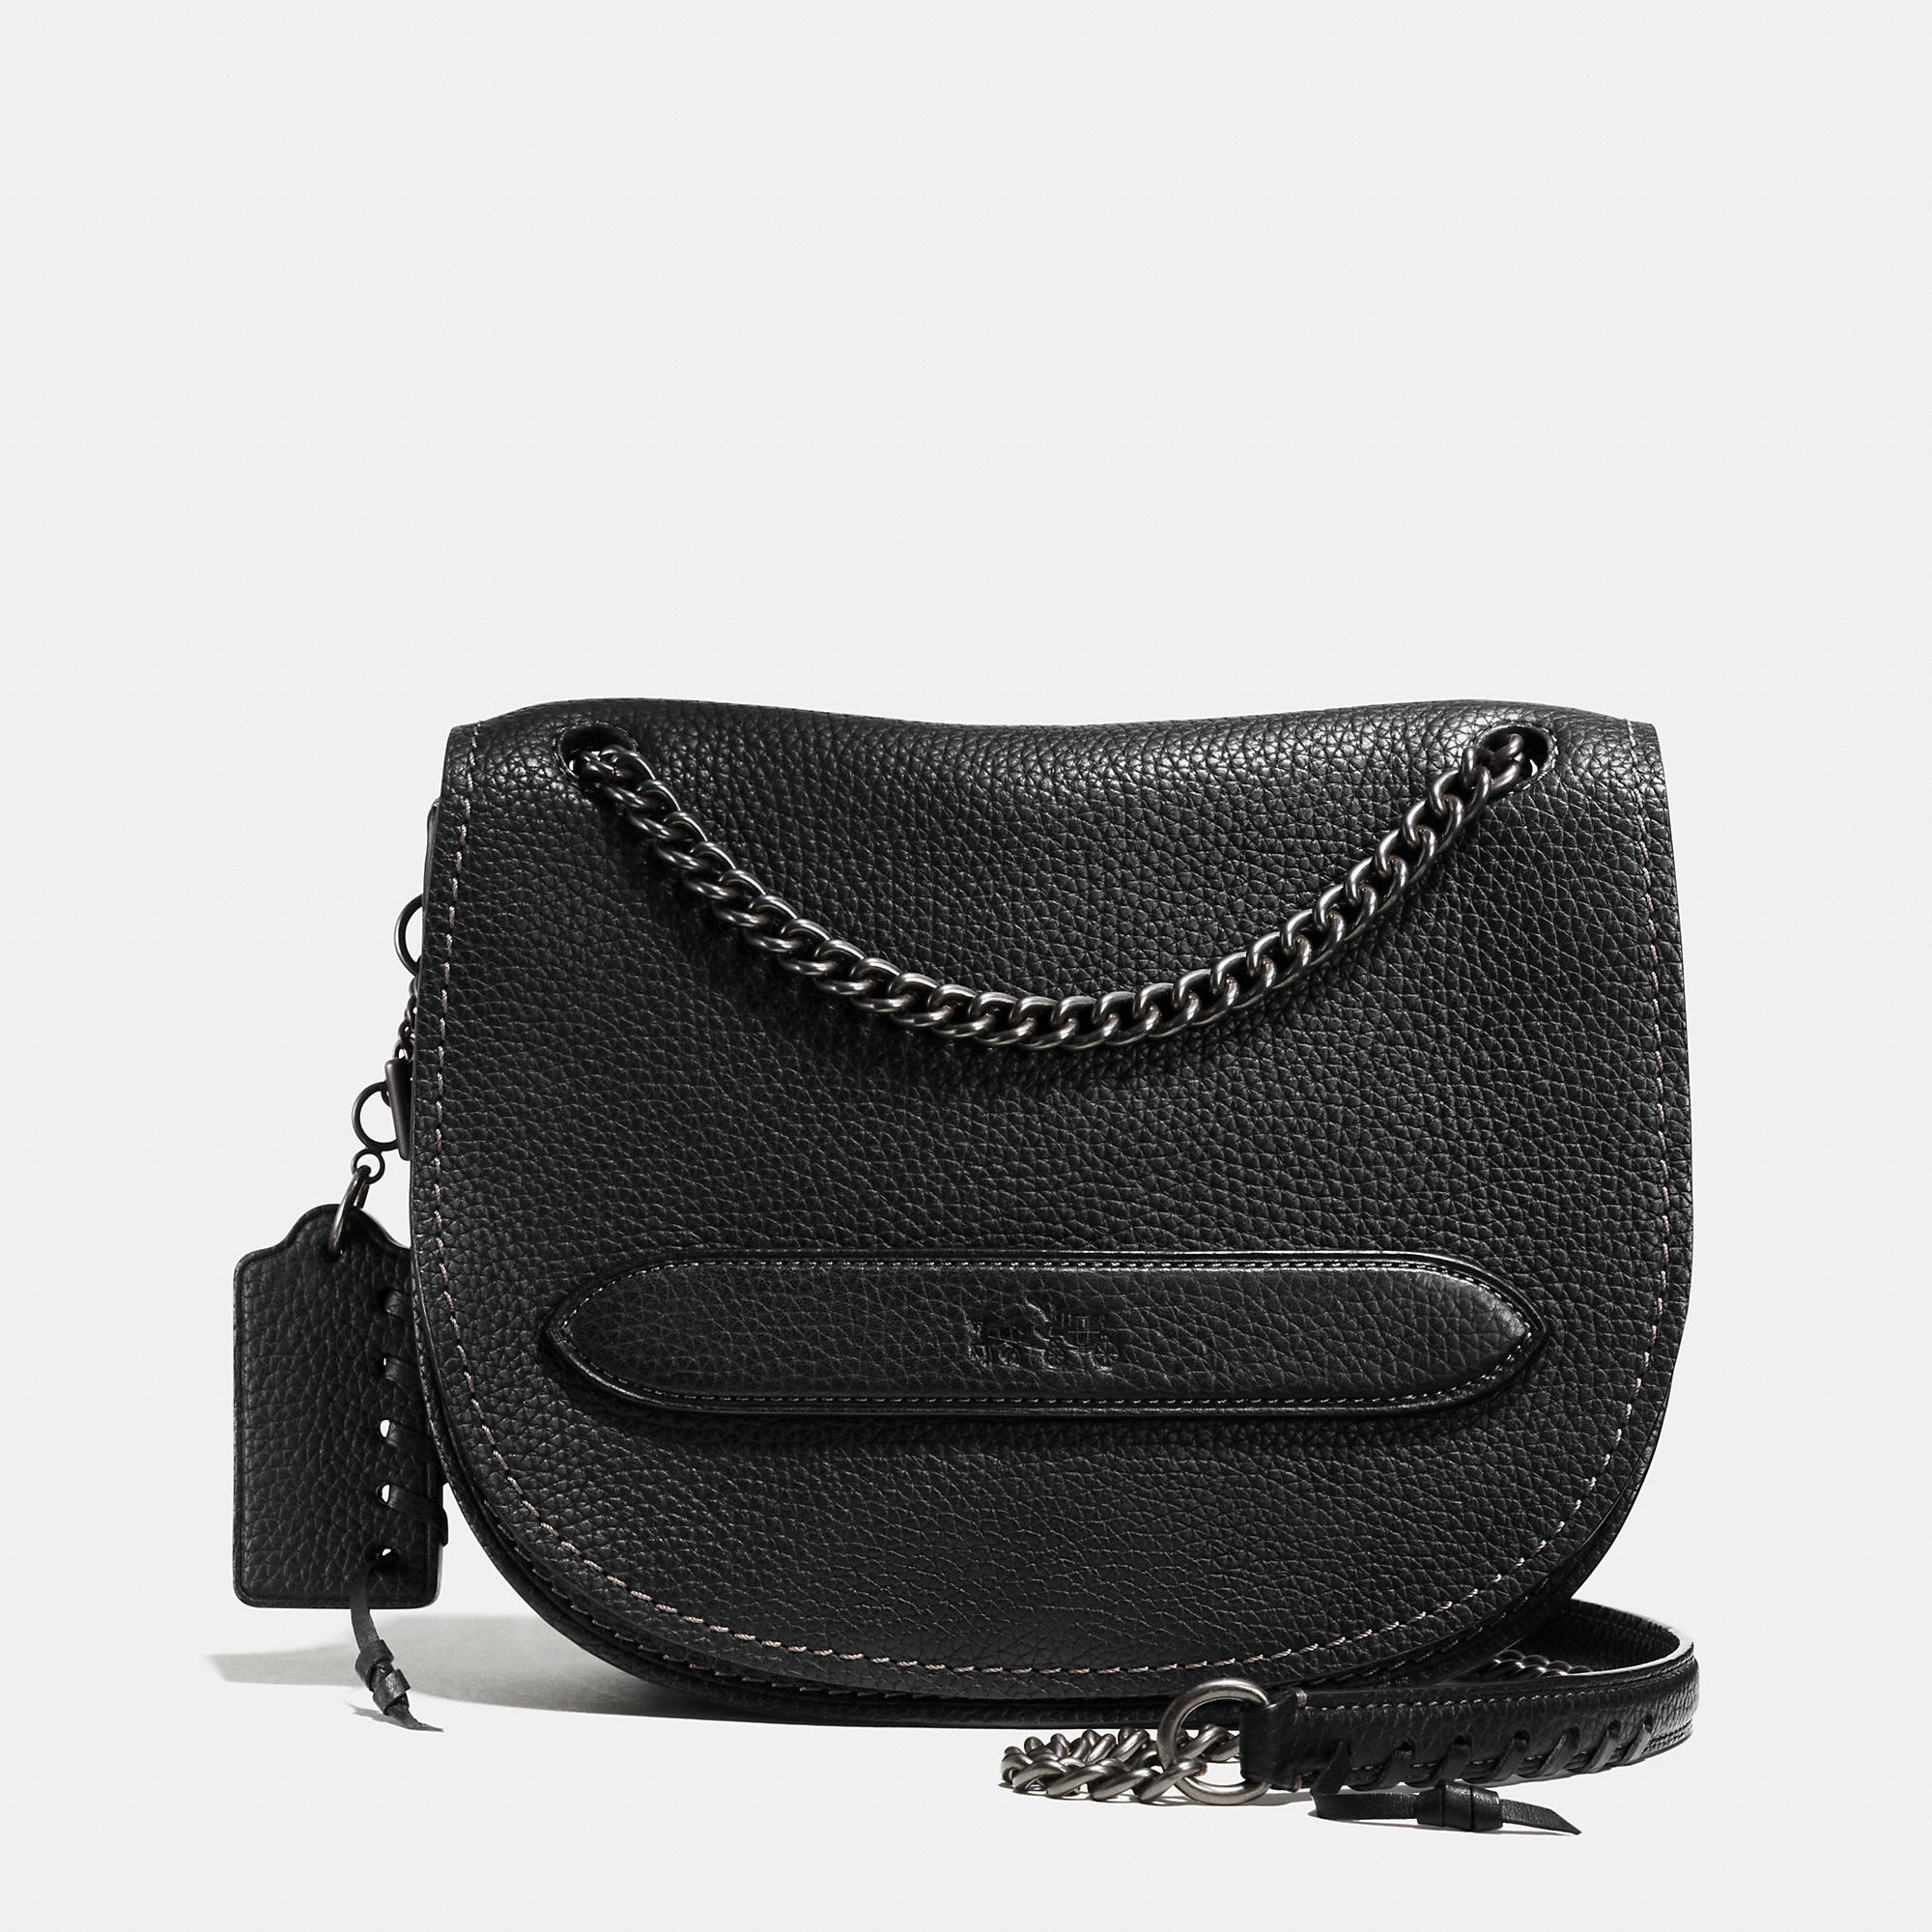 Coach Shadow Crossbody In Pebble Leather In Black Lyst